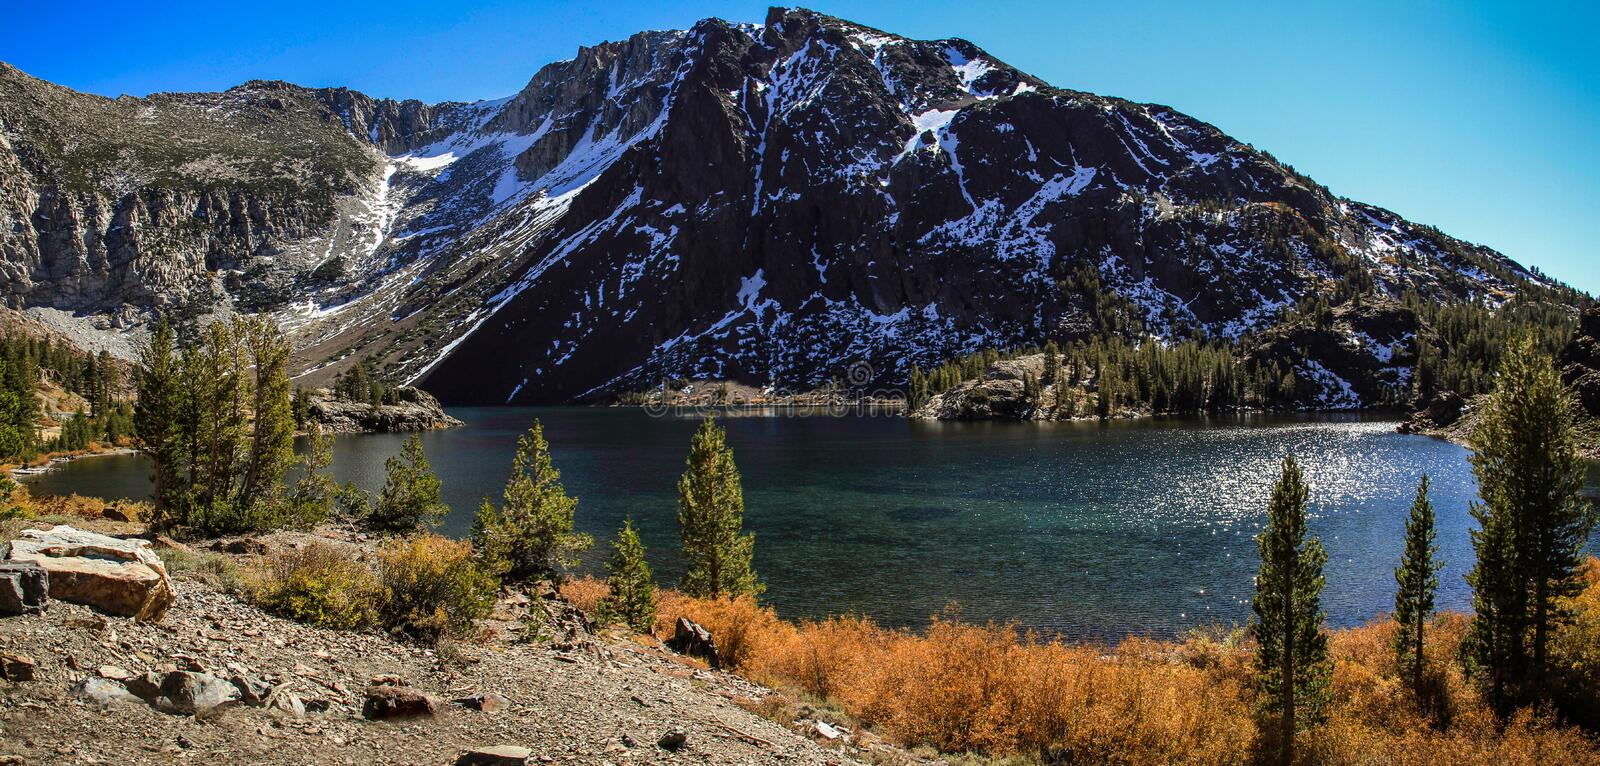 On the way to Yosemite National Park, California, USA royalty free stock photography